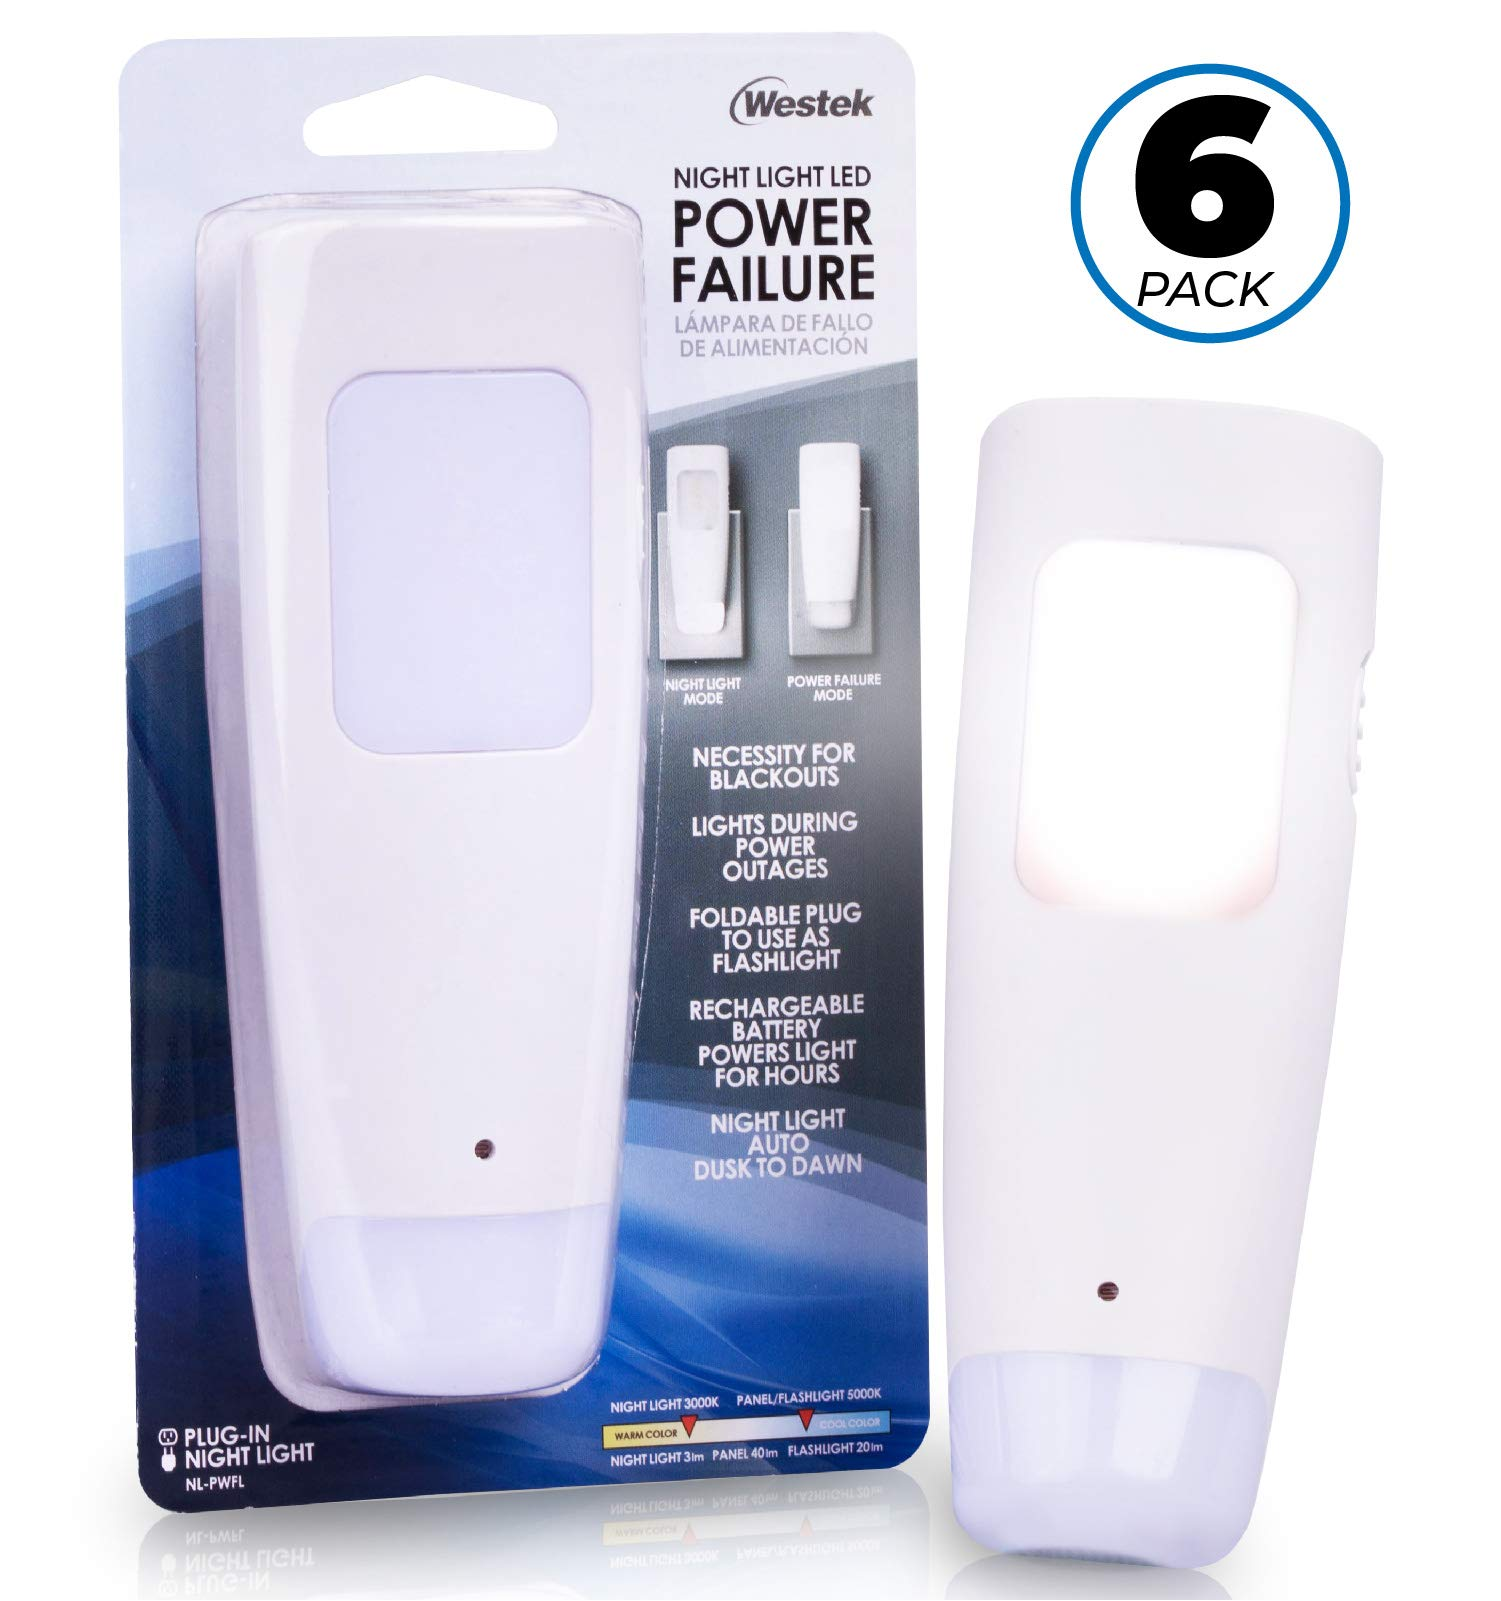 Westek Emergency Light, 6 Pack – Multi-Function LED Rechargeable Flashlight, Power Failure Light and Night Light – Must-Have Power Outage Lights, Ideal for Storms, Blackouts – NL-PWFL AmerTac